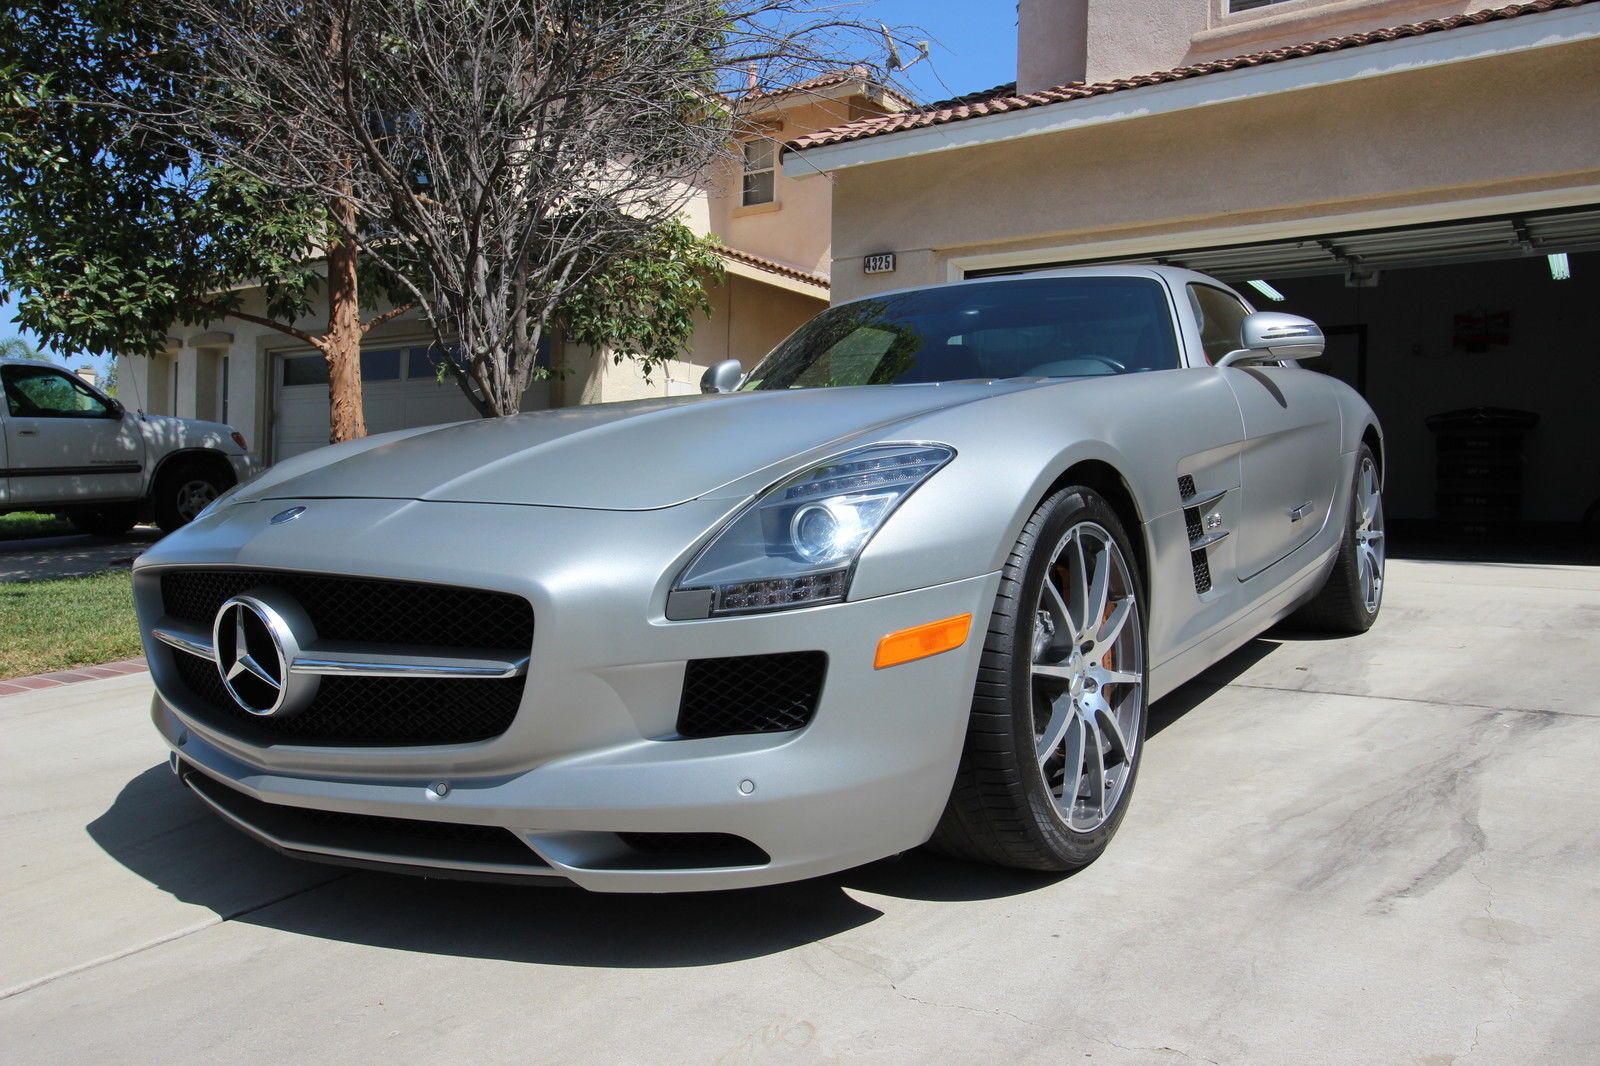 2011 mercedes benz sls amg coupe for sale for Mercedes benz sls amg for sale